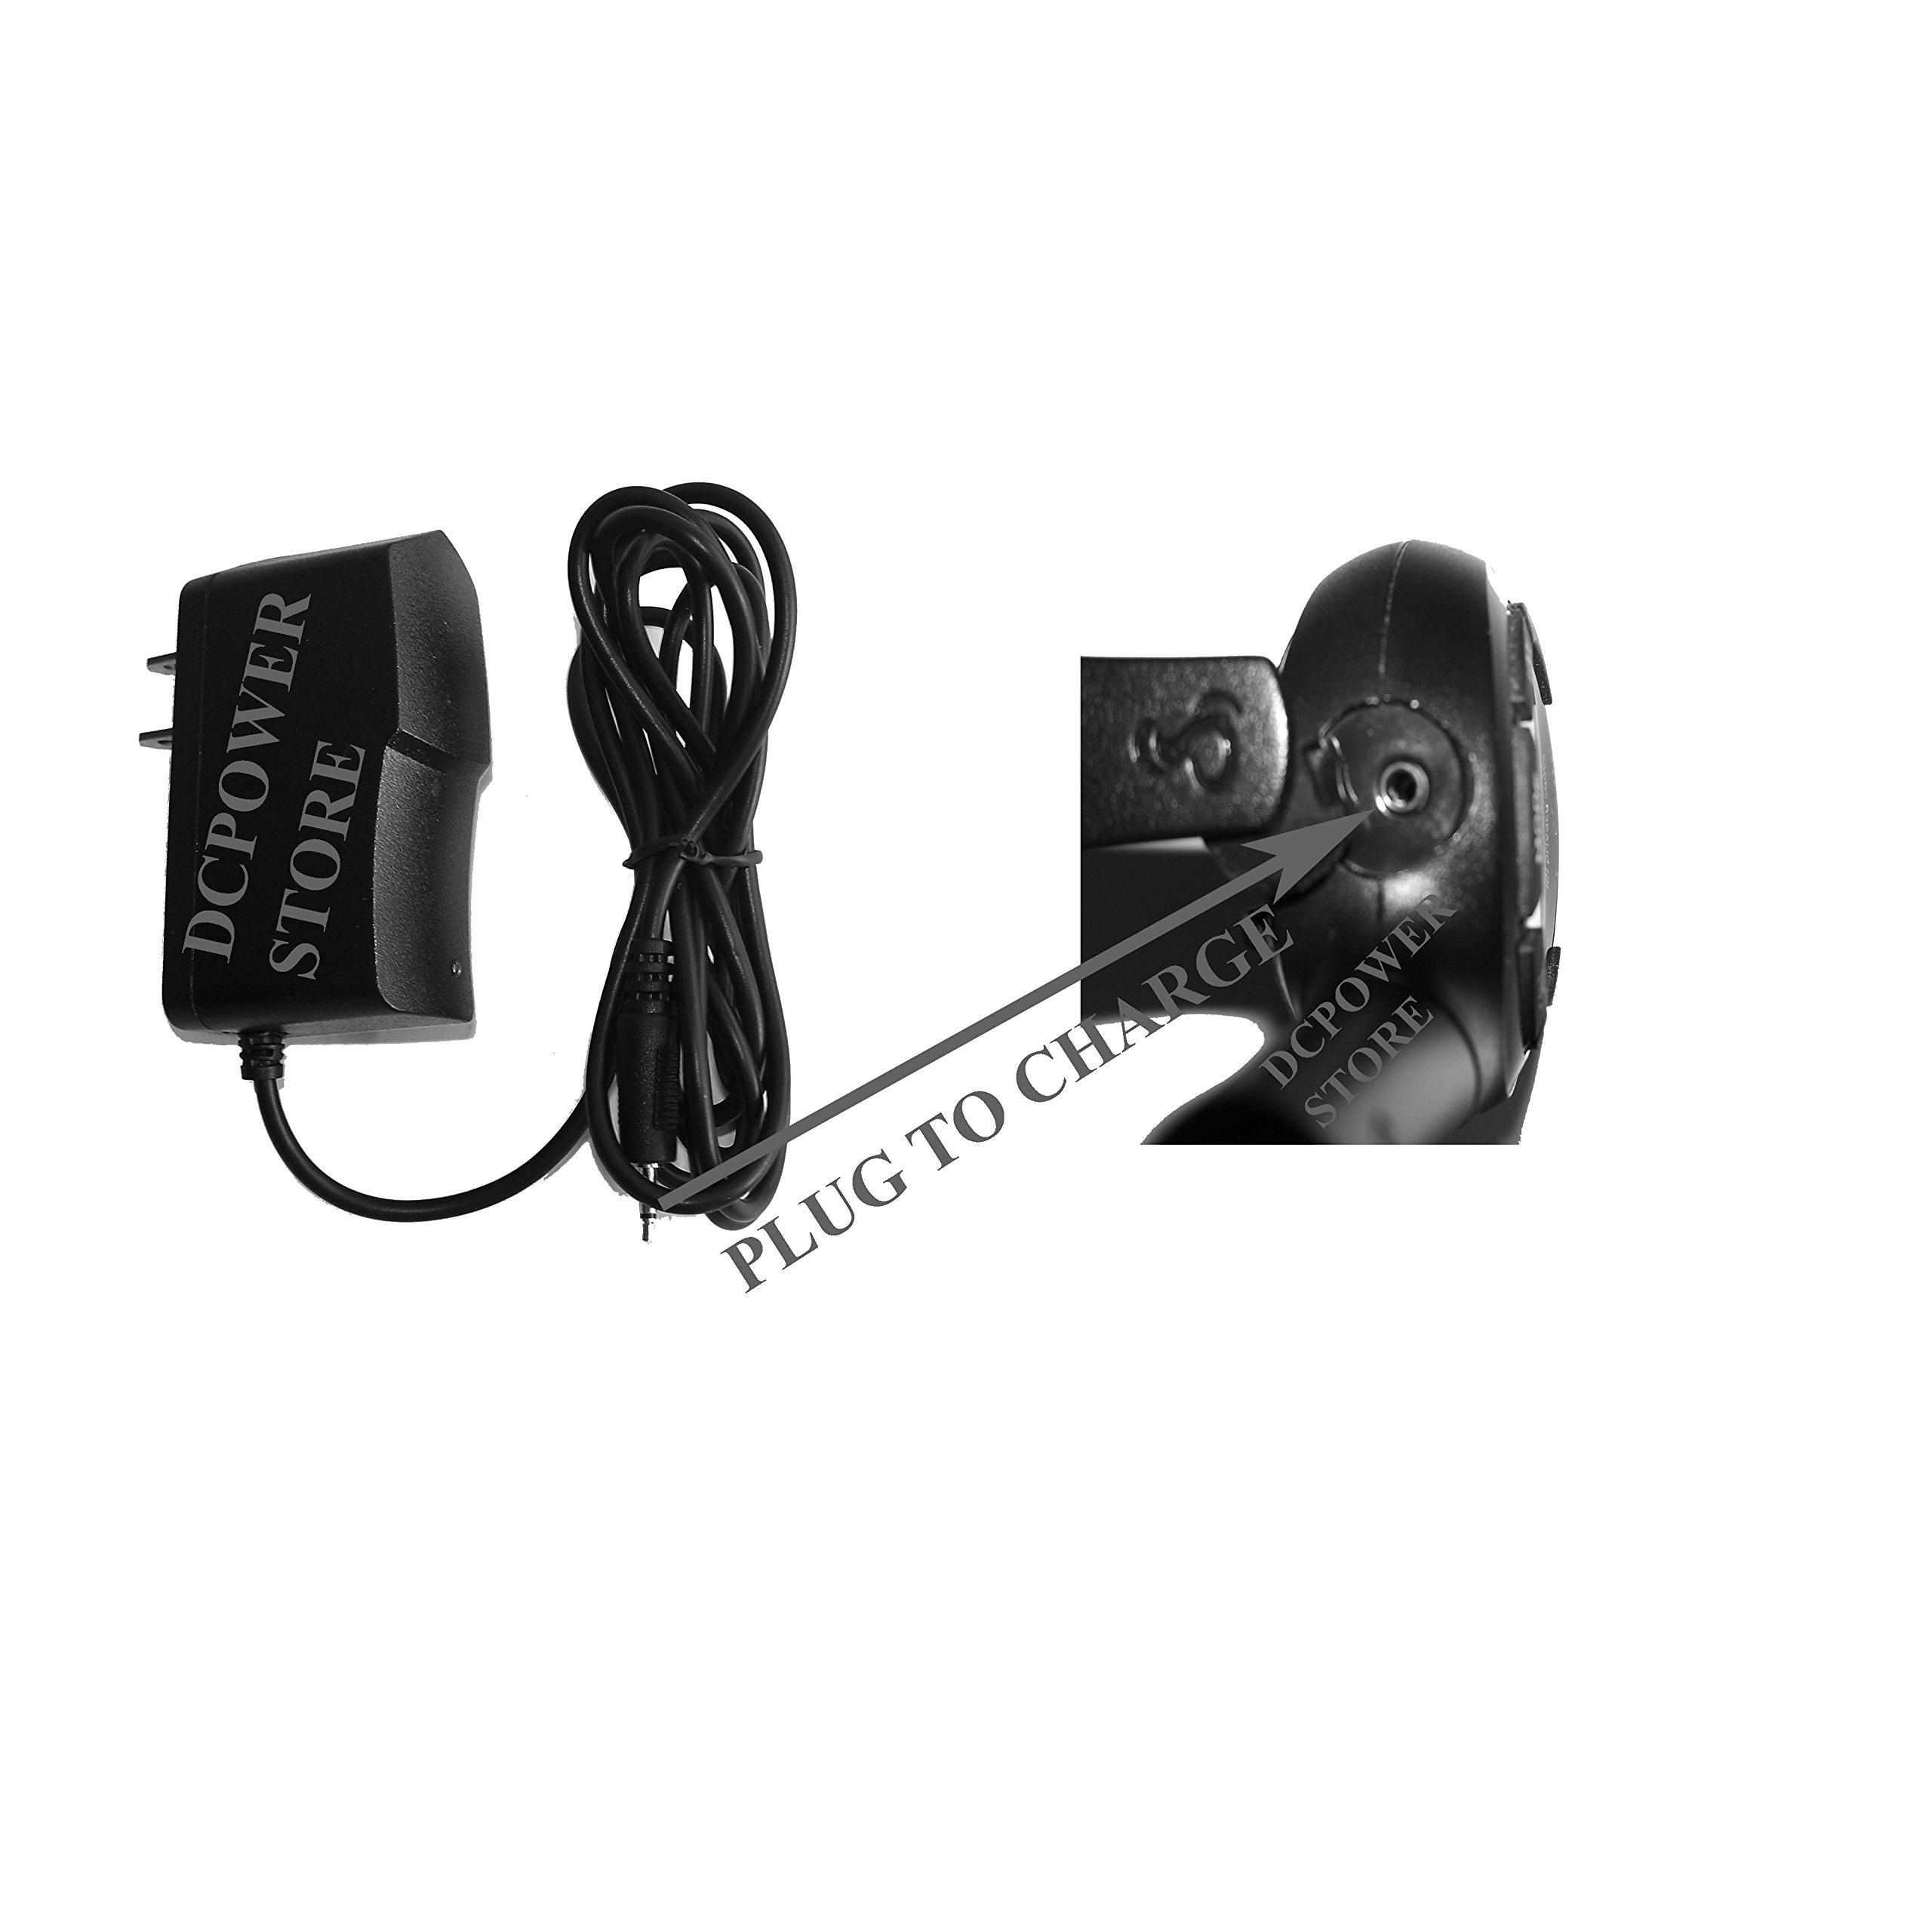 HOME WALL Charger Replacement for Cobra MicroTalk CXR925, CXR925C 2-Way Radio